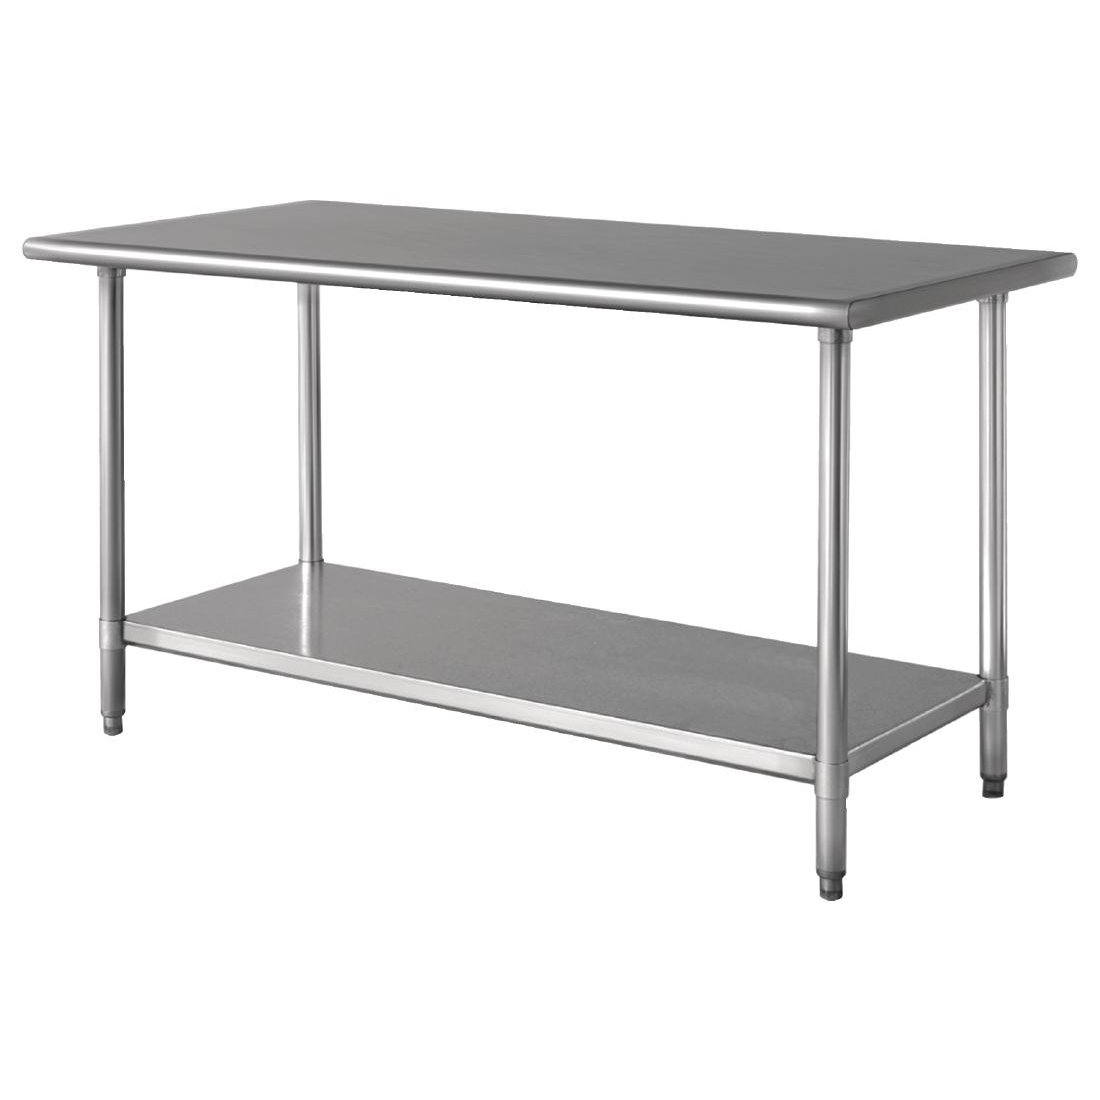 Stainless Steel Work Table With Undershelf 35(H)x 36(W)x 24 (D)''. Stainless Steel